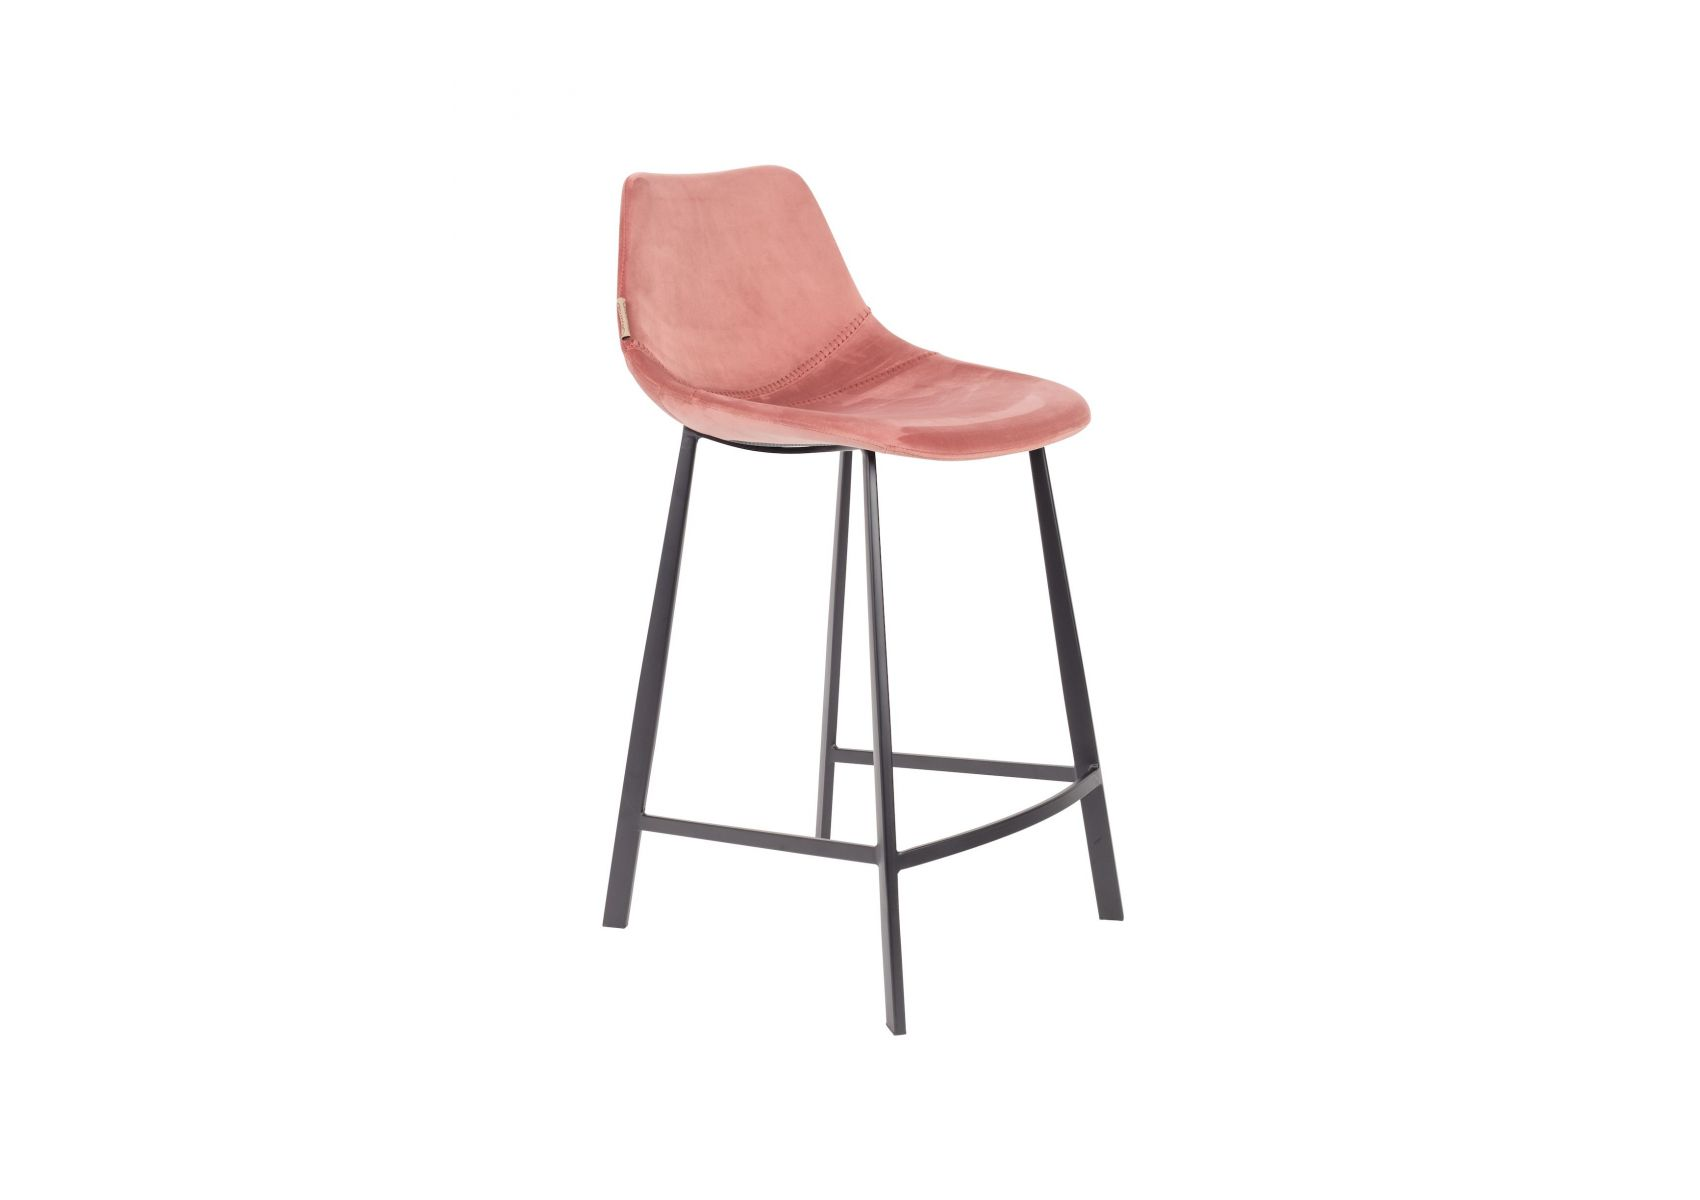 Tabouret De Bar Assise 65 Lot De 2 Tabourets 65 Cm En Velours Franky Dutchbone